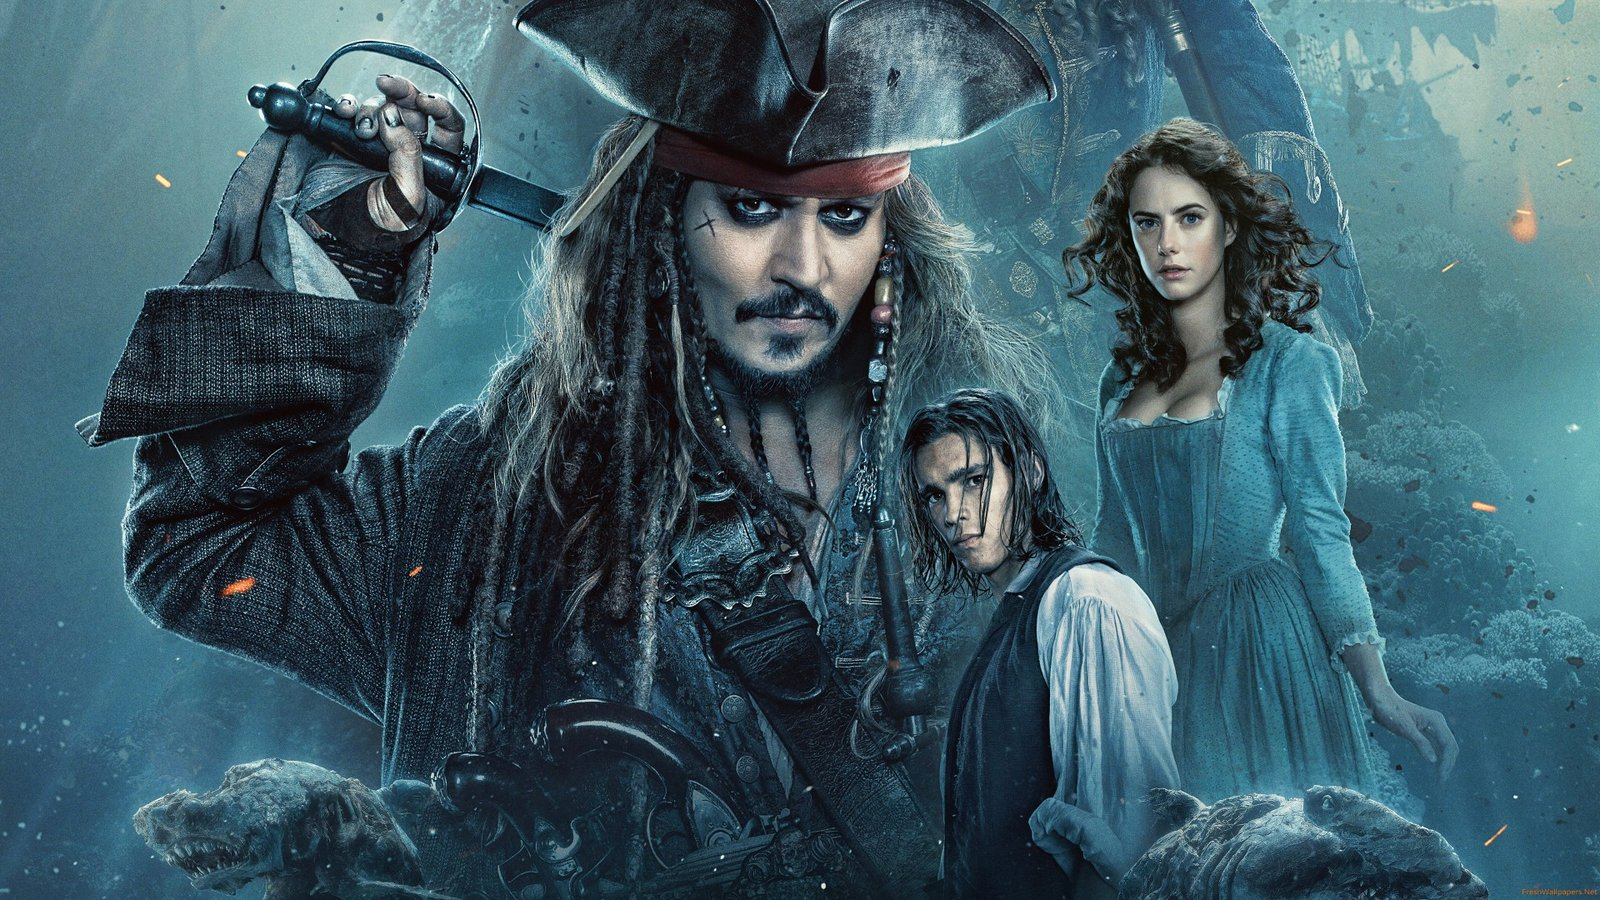 / Pirates of the Caribbean: Dead Men Tell No Tales